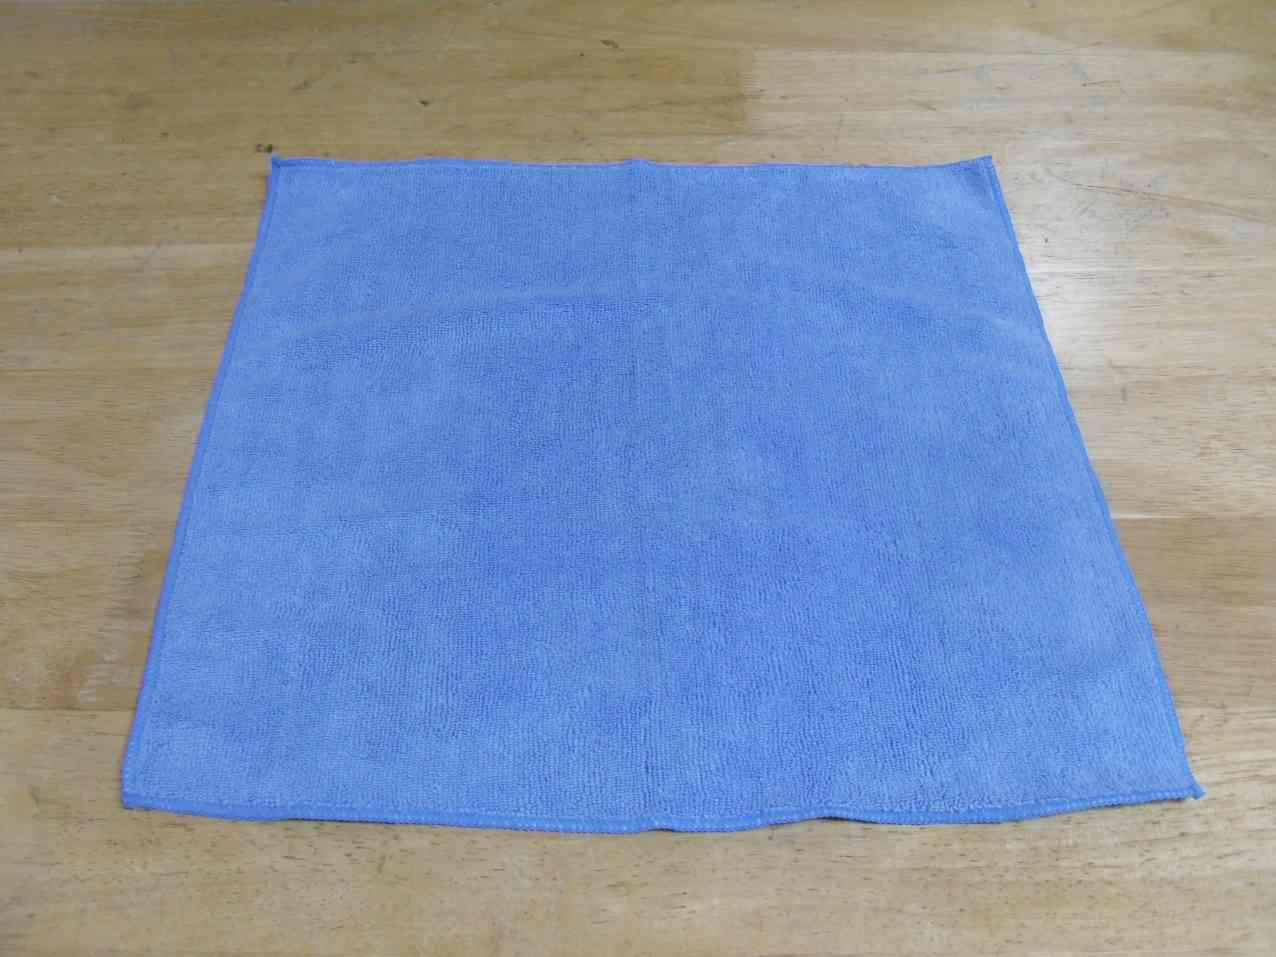 Durable light blue cleaning towel